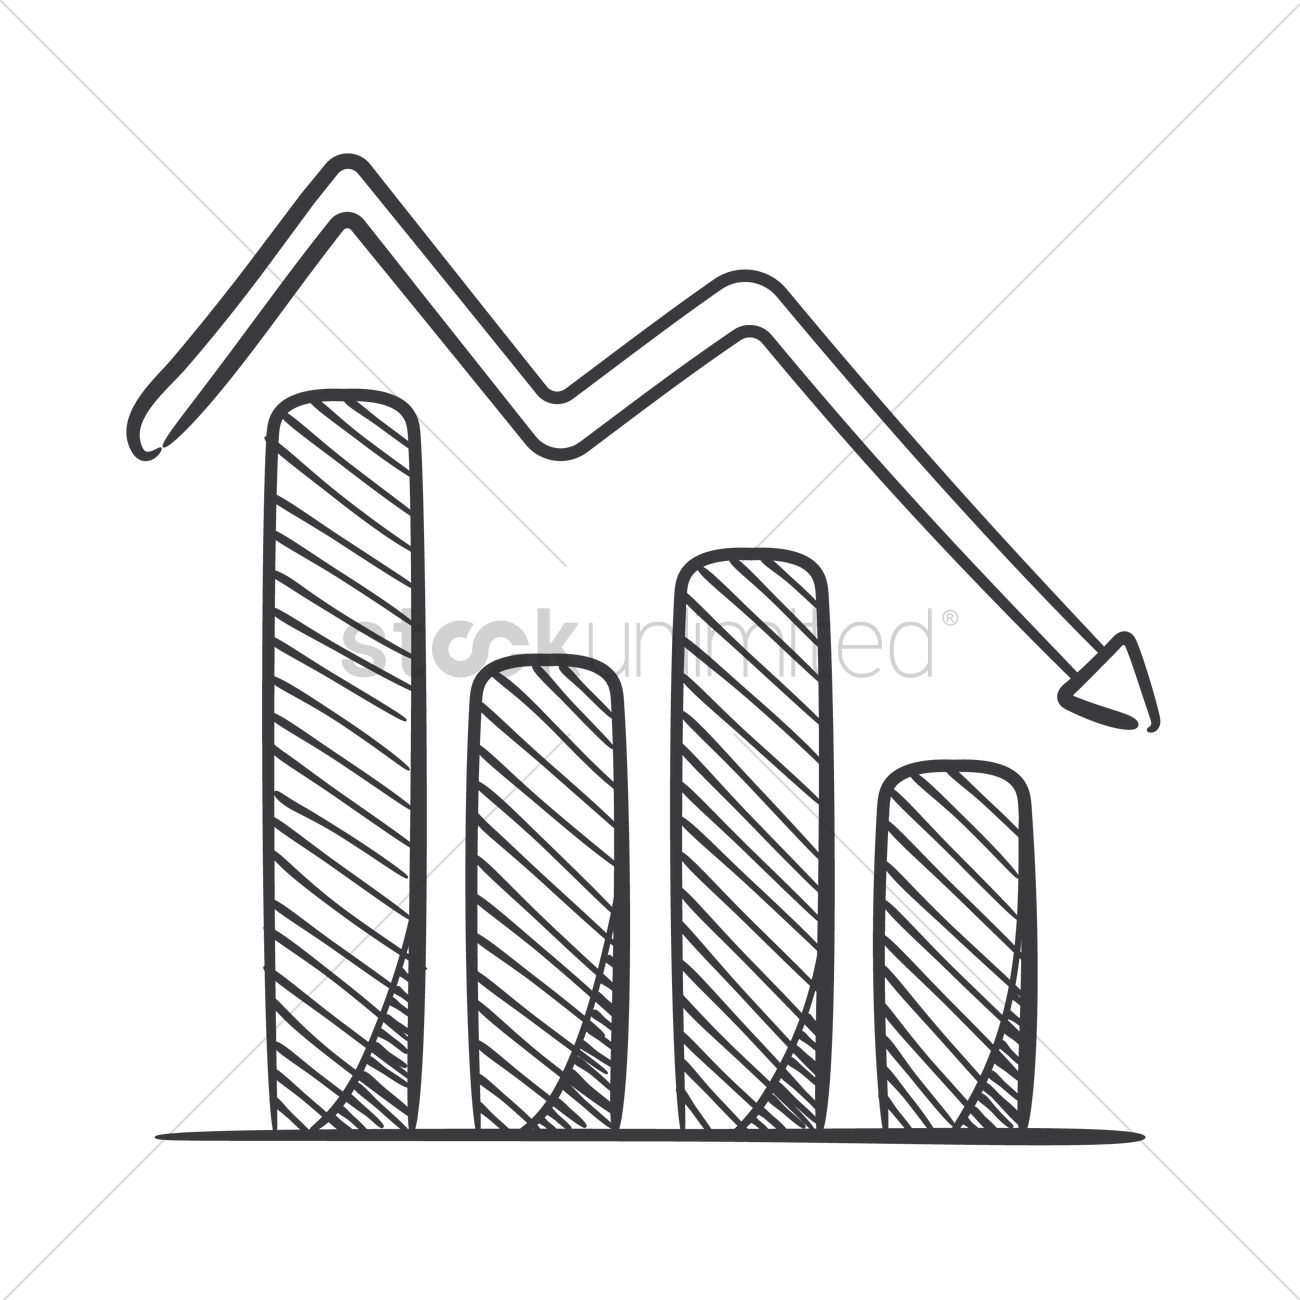 Bar Graph Drawing at GetDrawings.com | Free for personal use Bar ...